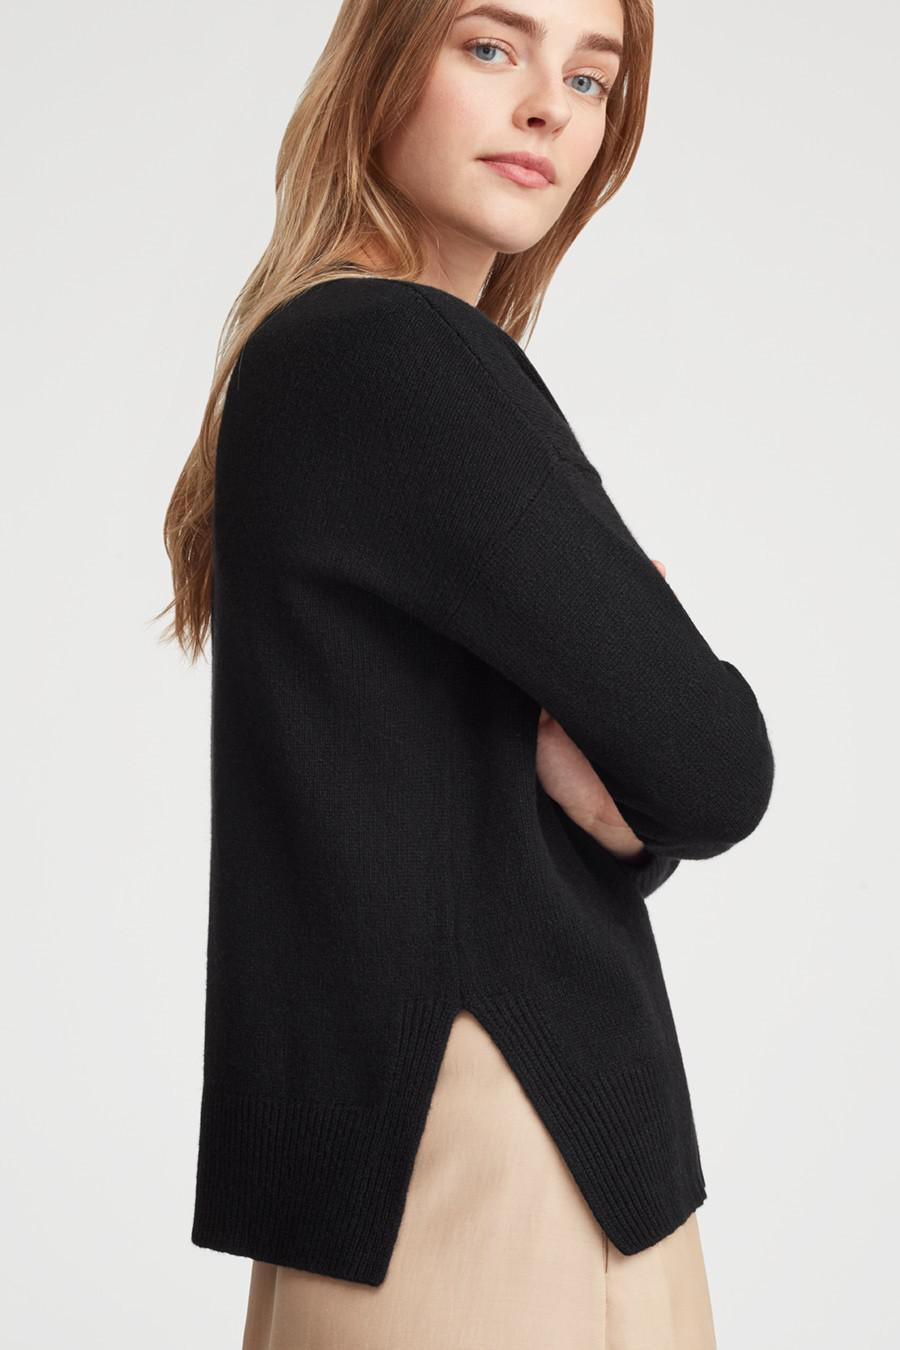 Women's Recycled Crewneck Sweater in Black   Size: 4